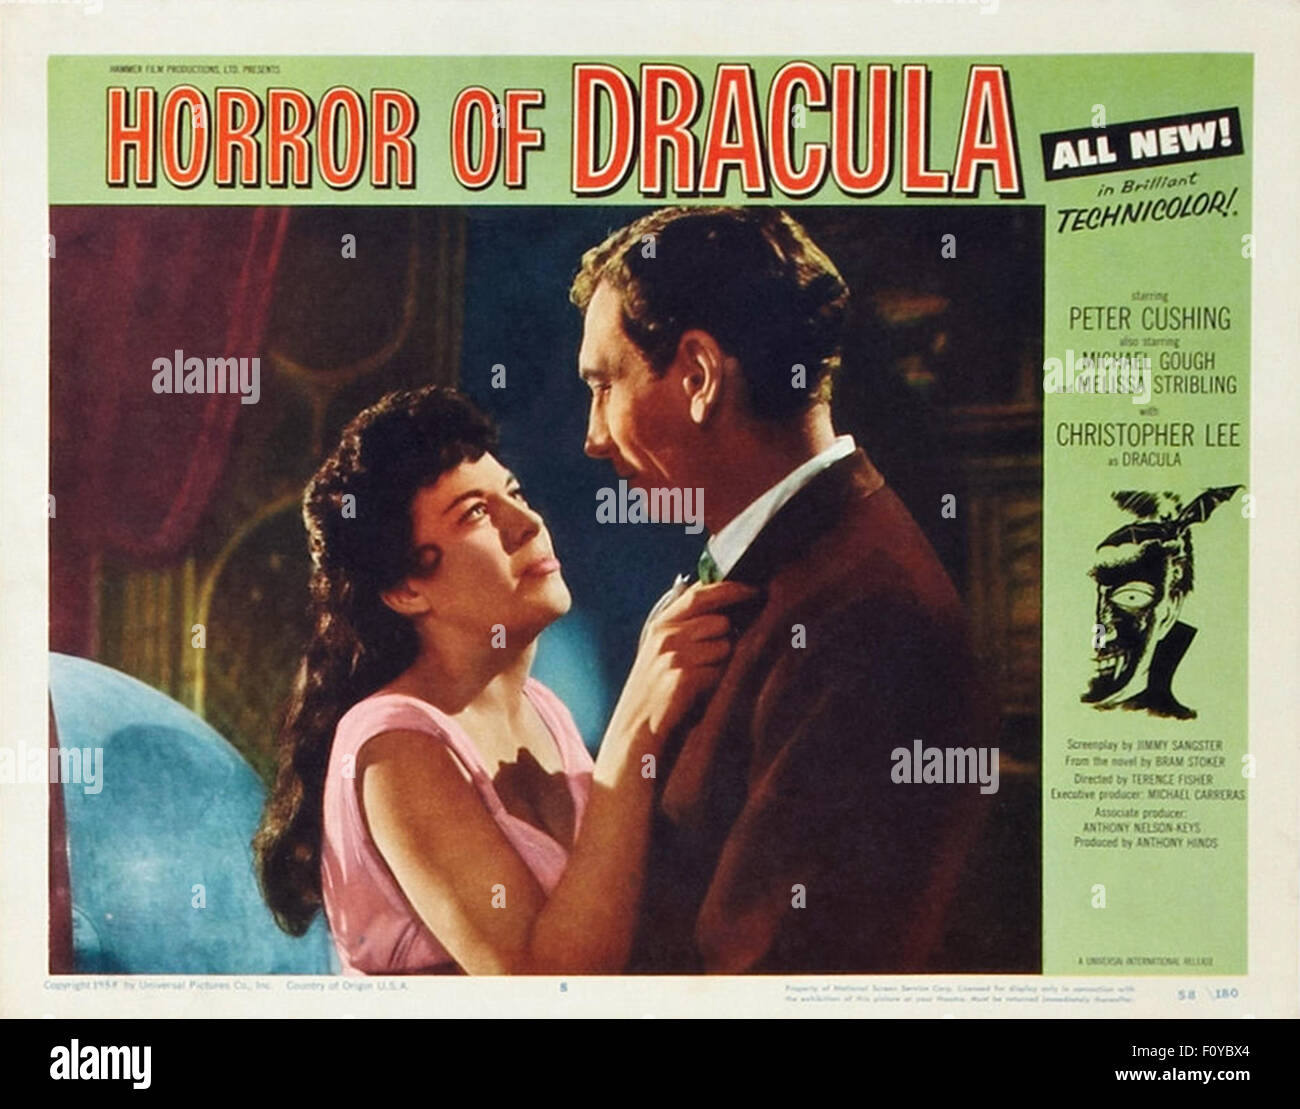 Horror of Dracula - 19 - Movie Poster - Stock Image